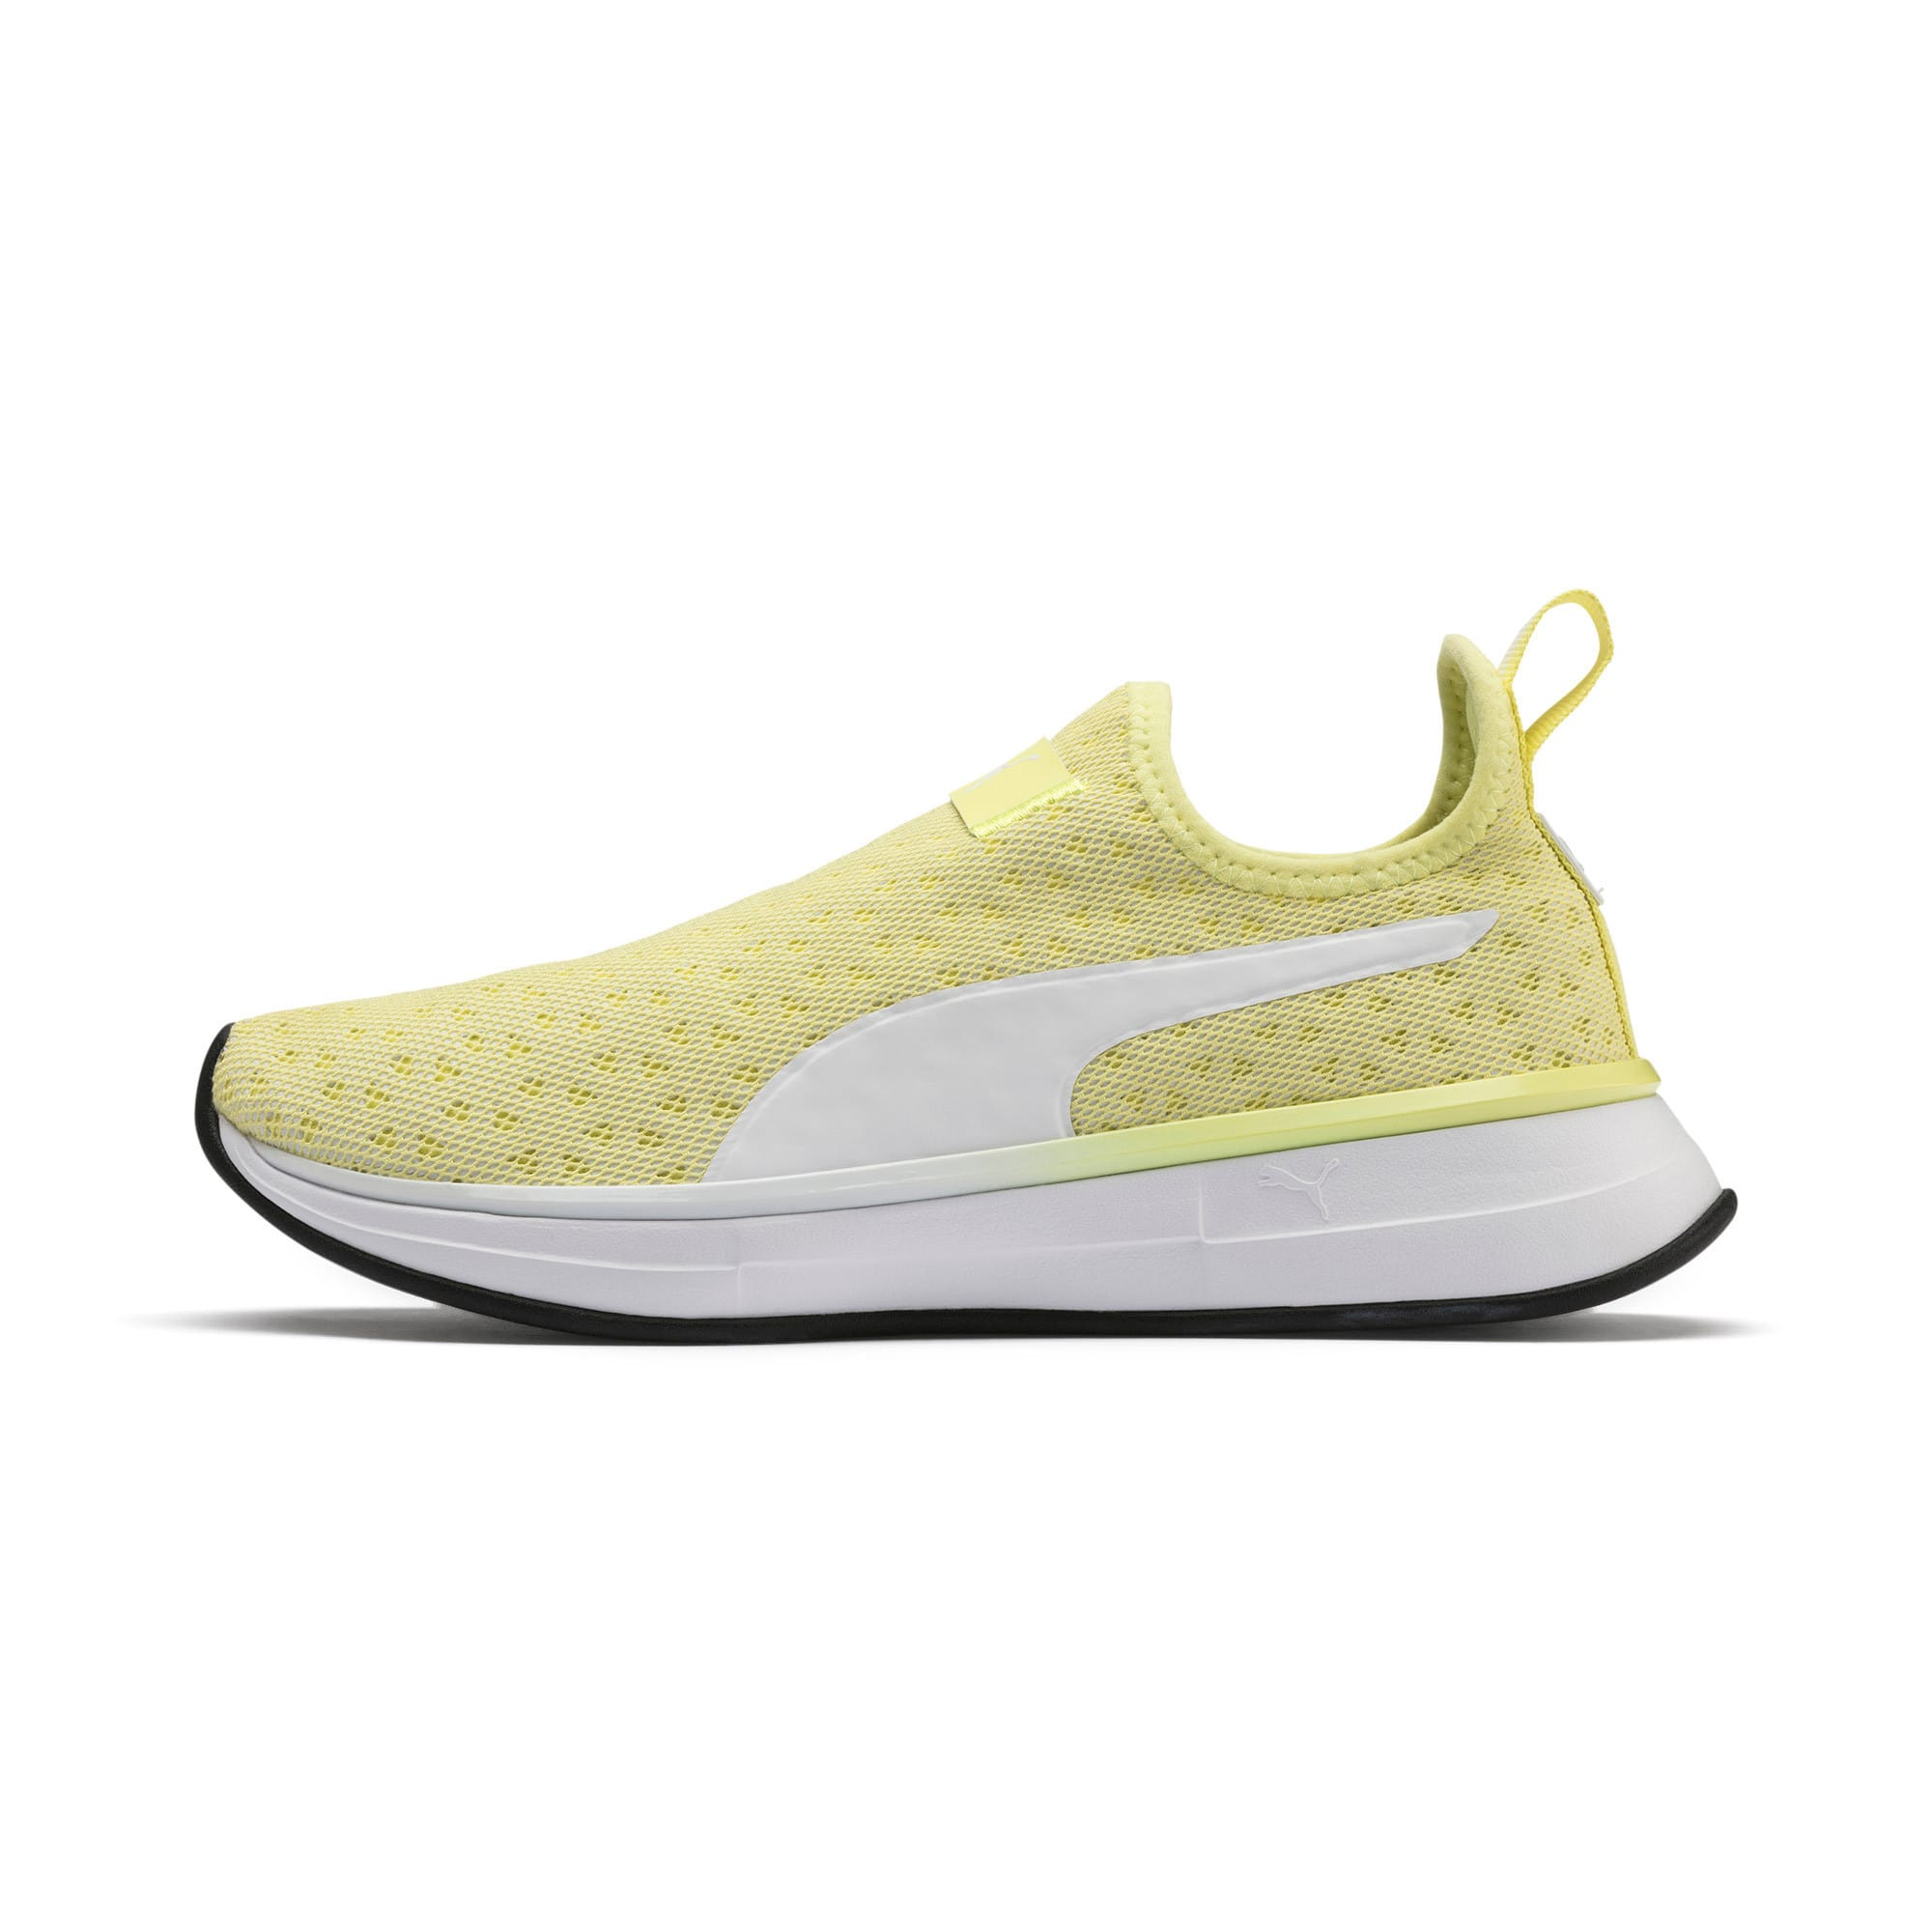 Thumbnail 1 of SG Slip-on Bright Women's Training Shoes, YELLOW-Puma White-Puma Black, medium